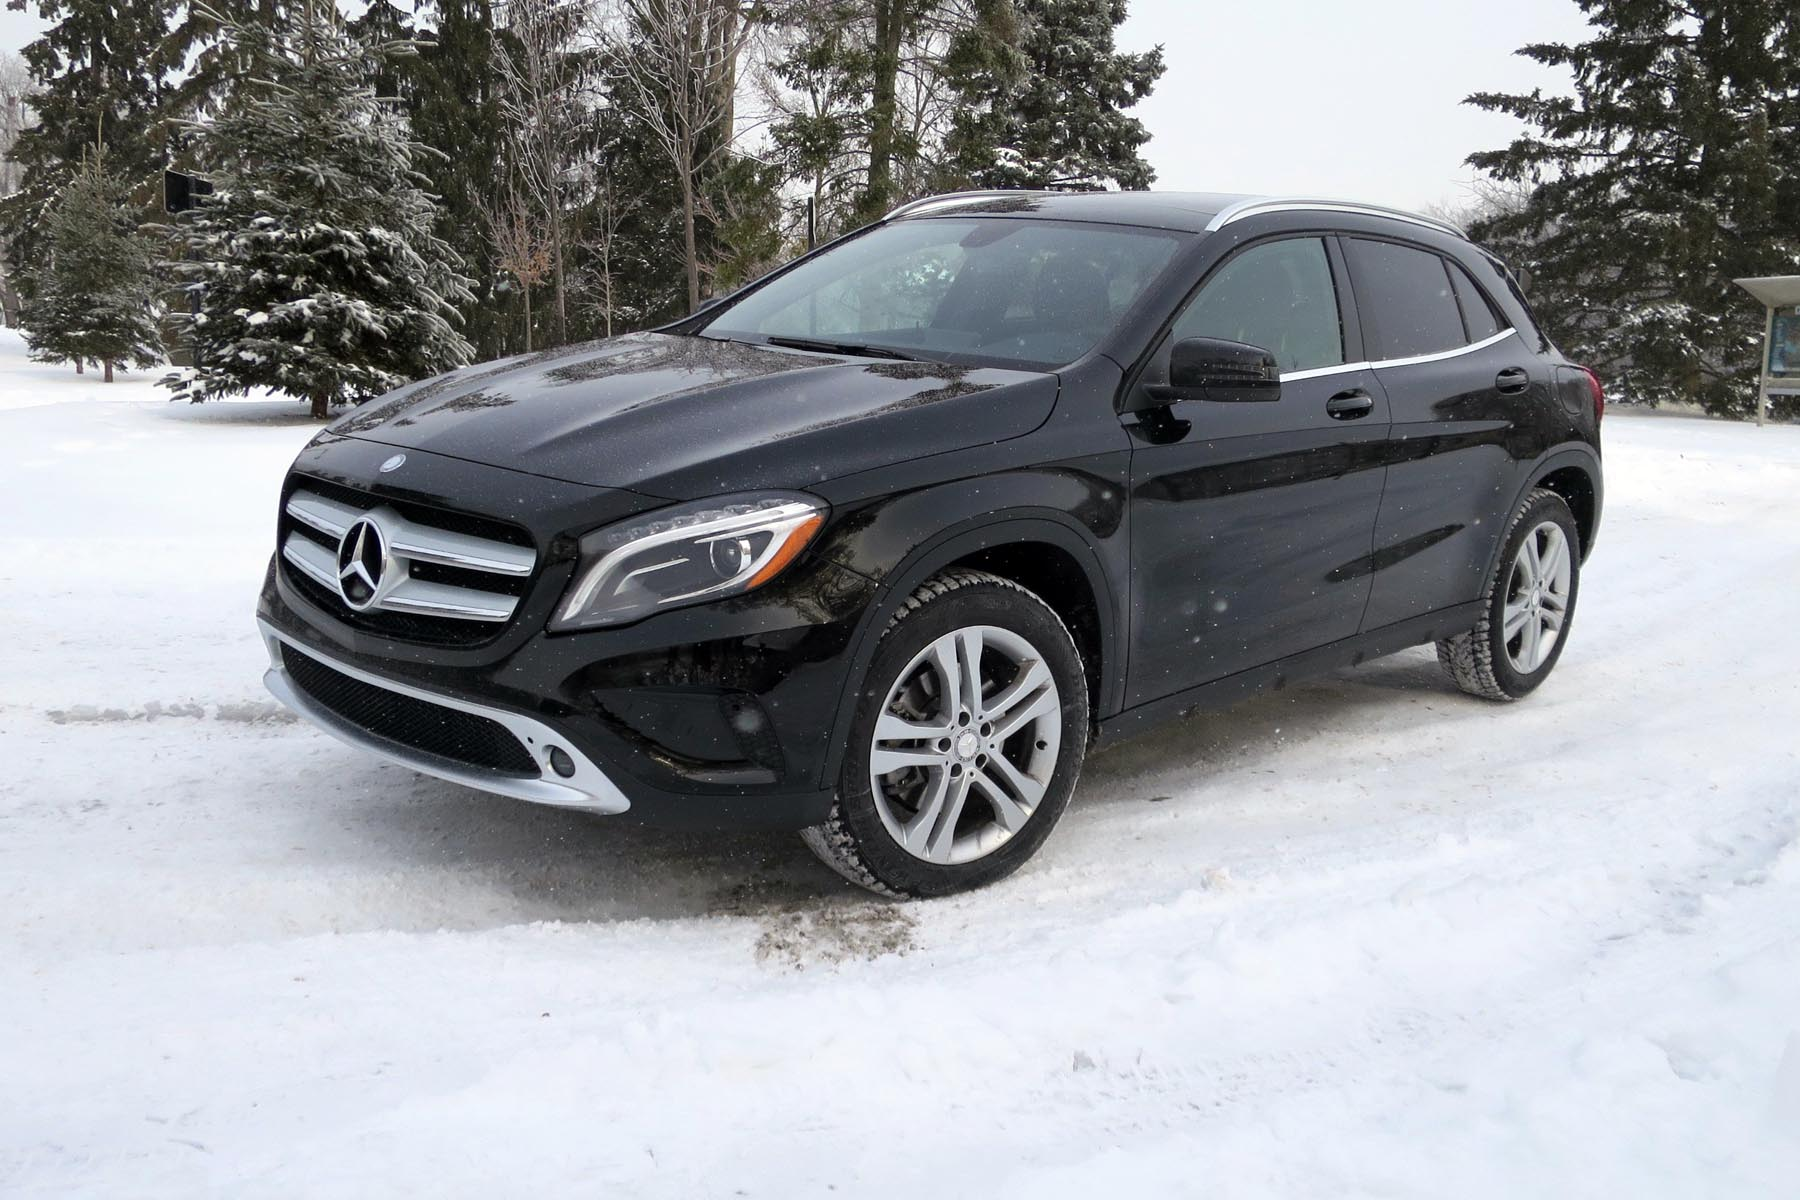 Benz 2016 gla 250 2017 2018 best cars reviews for Mercedes benz gla 250 price